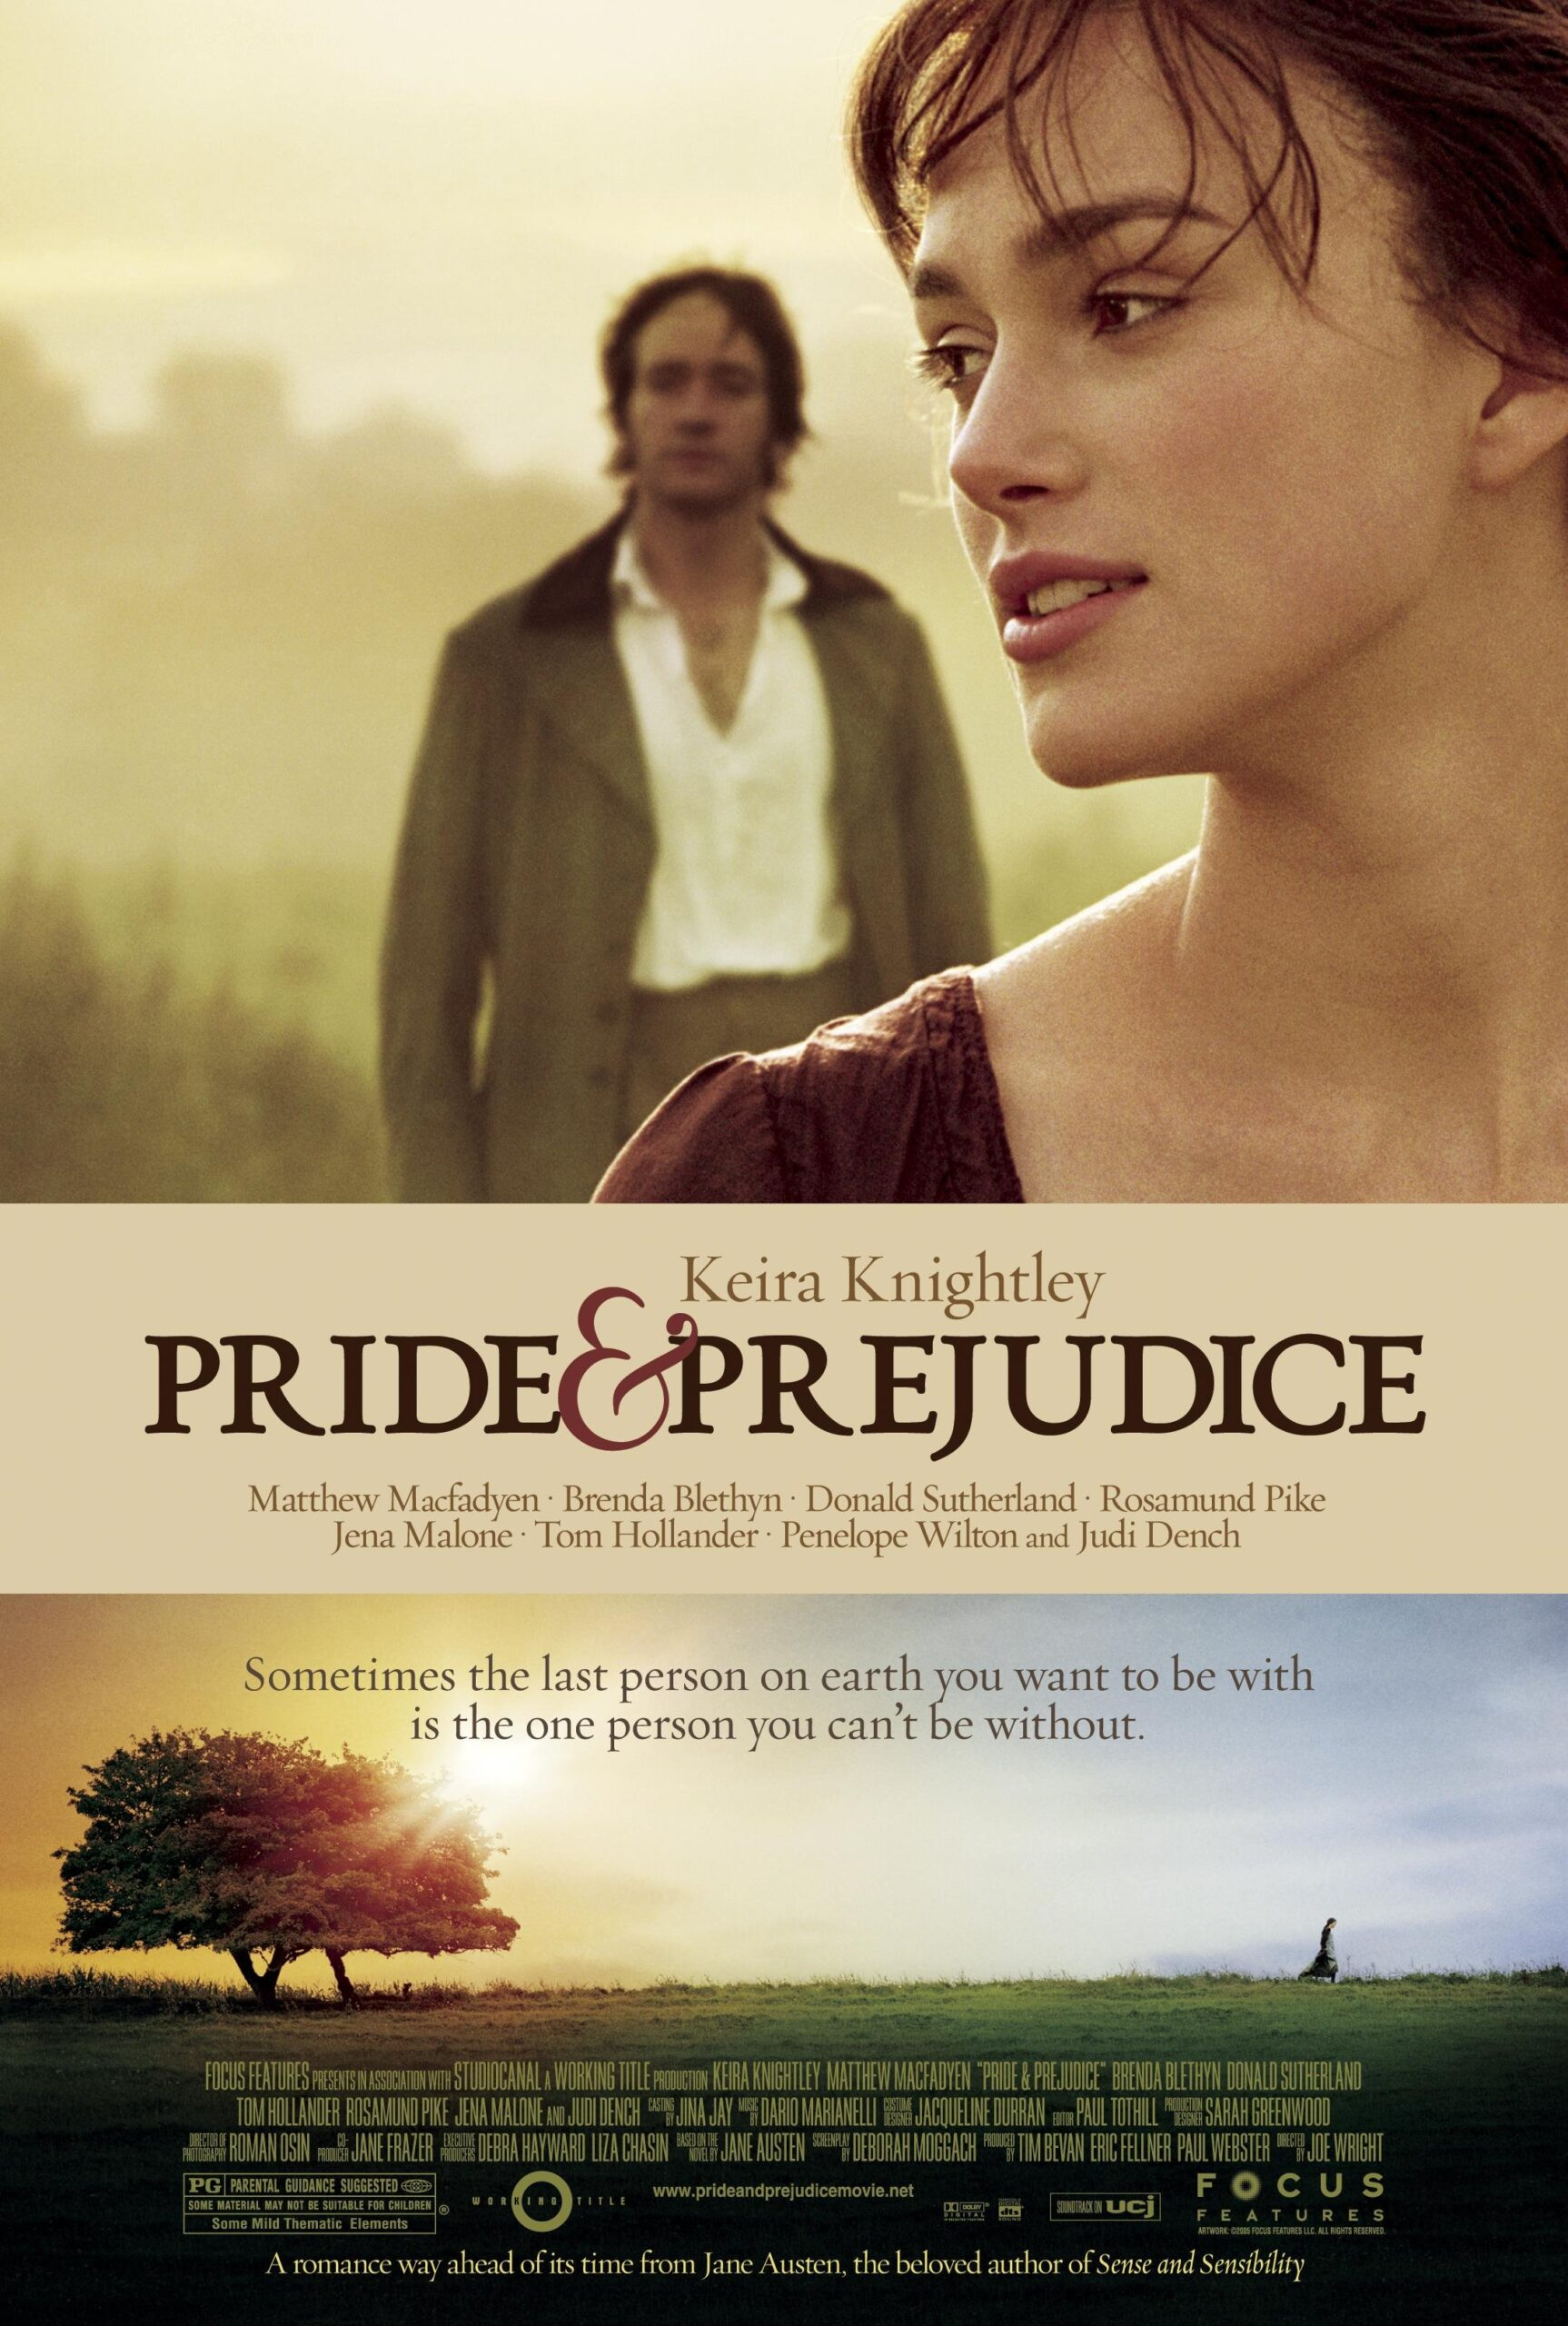 A RANT on Pride and Prejudice